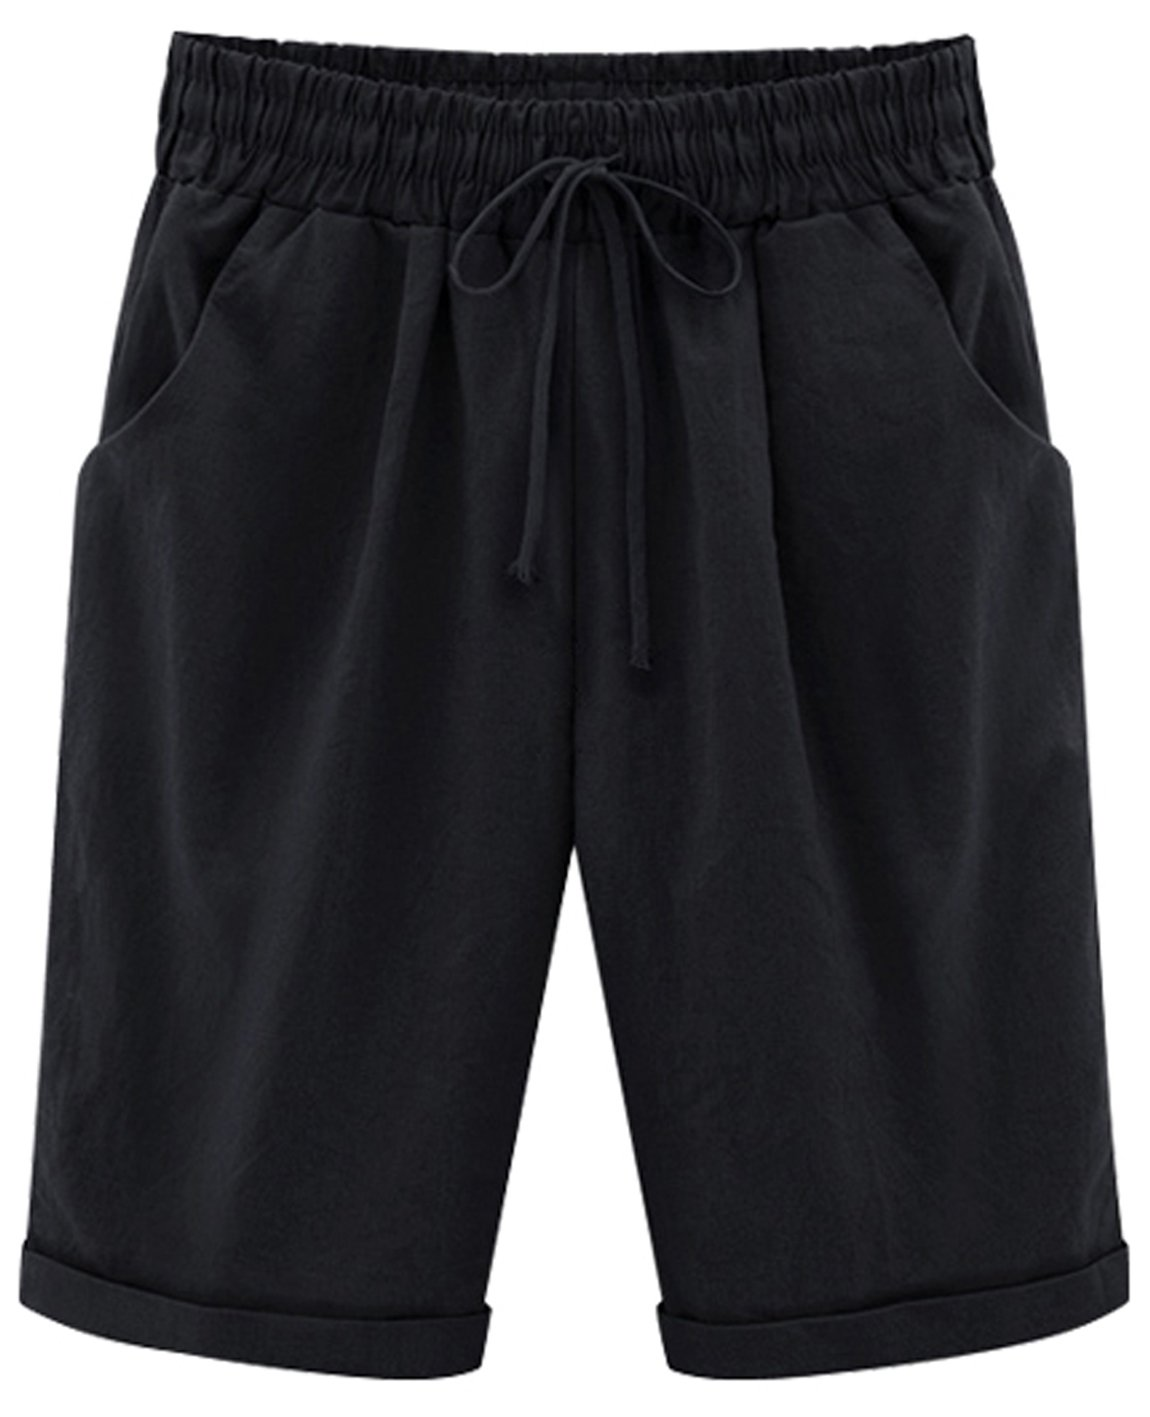 HOW'ON Women's Casual Elastic Waist Knee-Length Curling Bermuda Shorts with Drawstring Black L